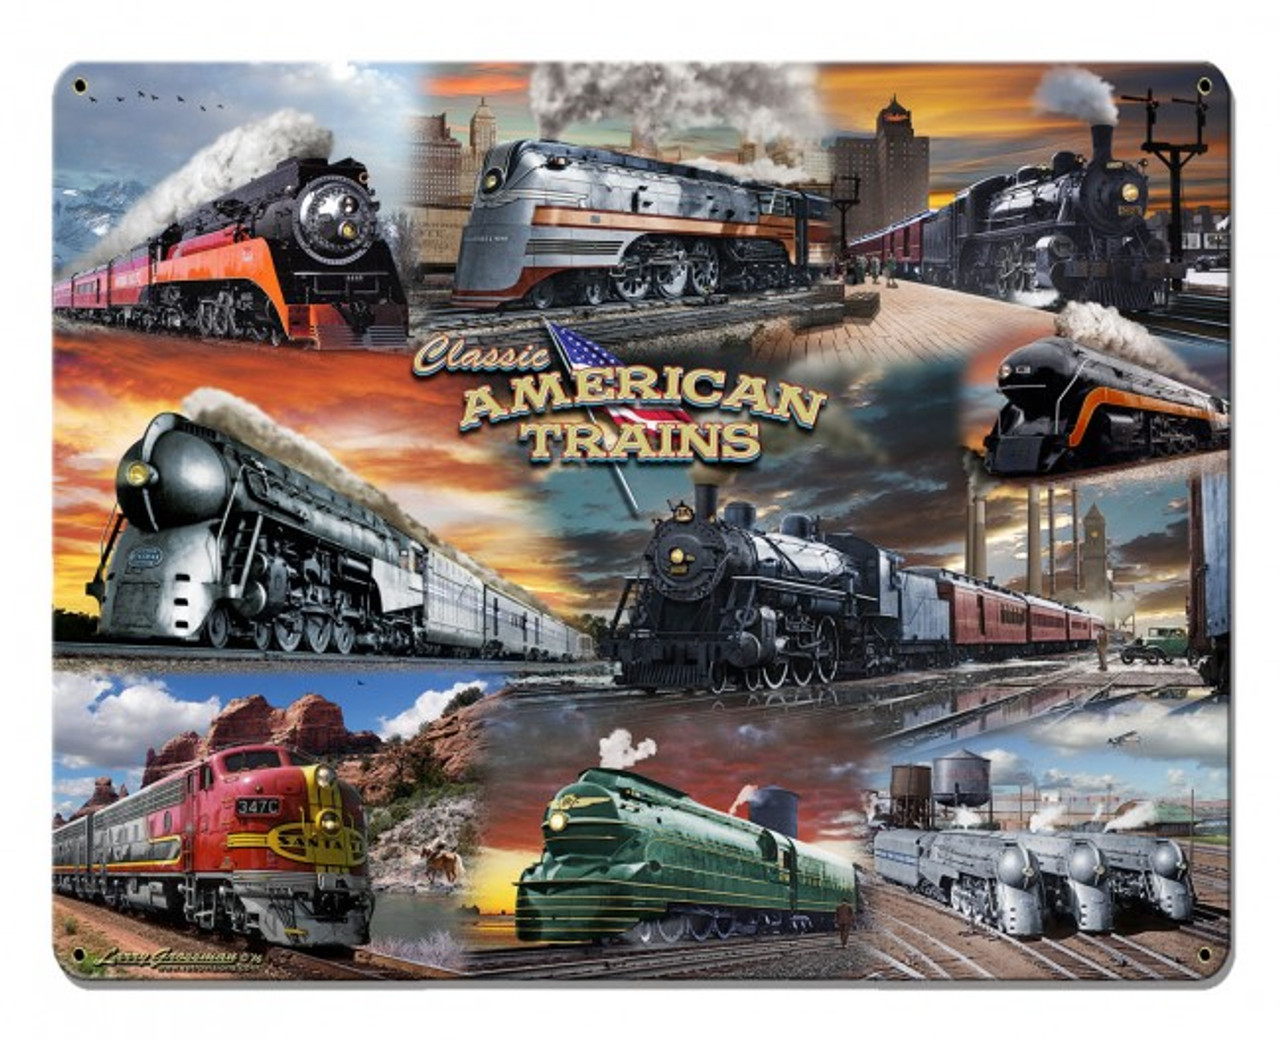 Collage Trains Metal Sign 30 x 24 Inches